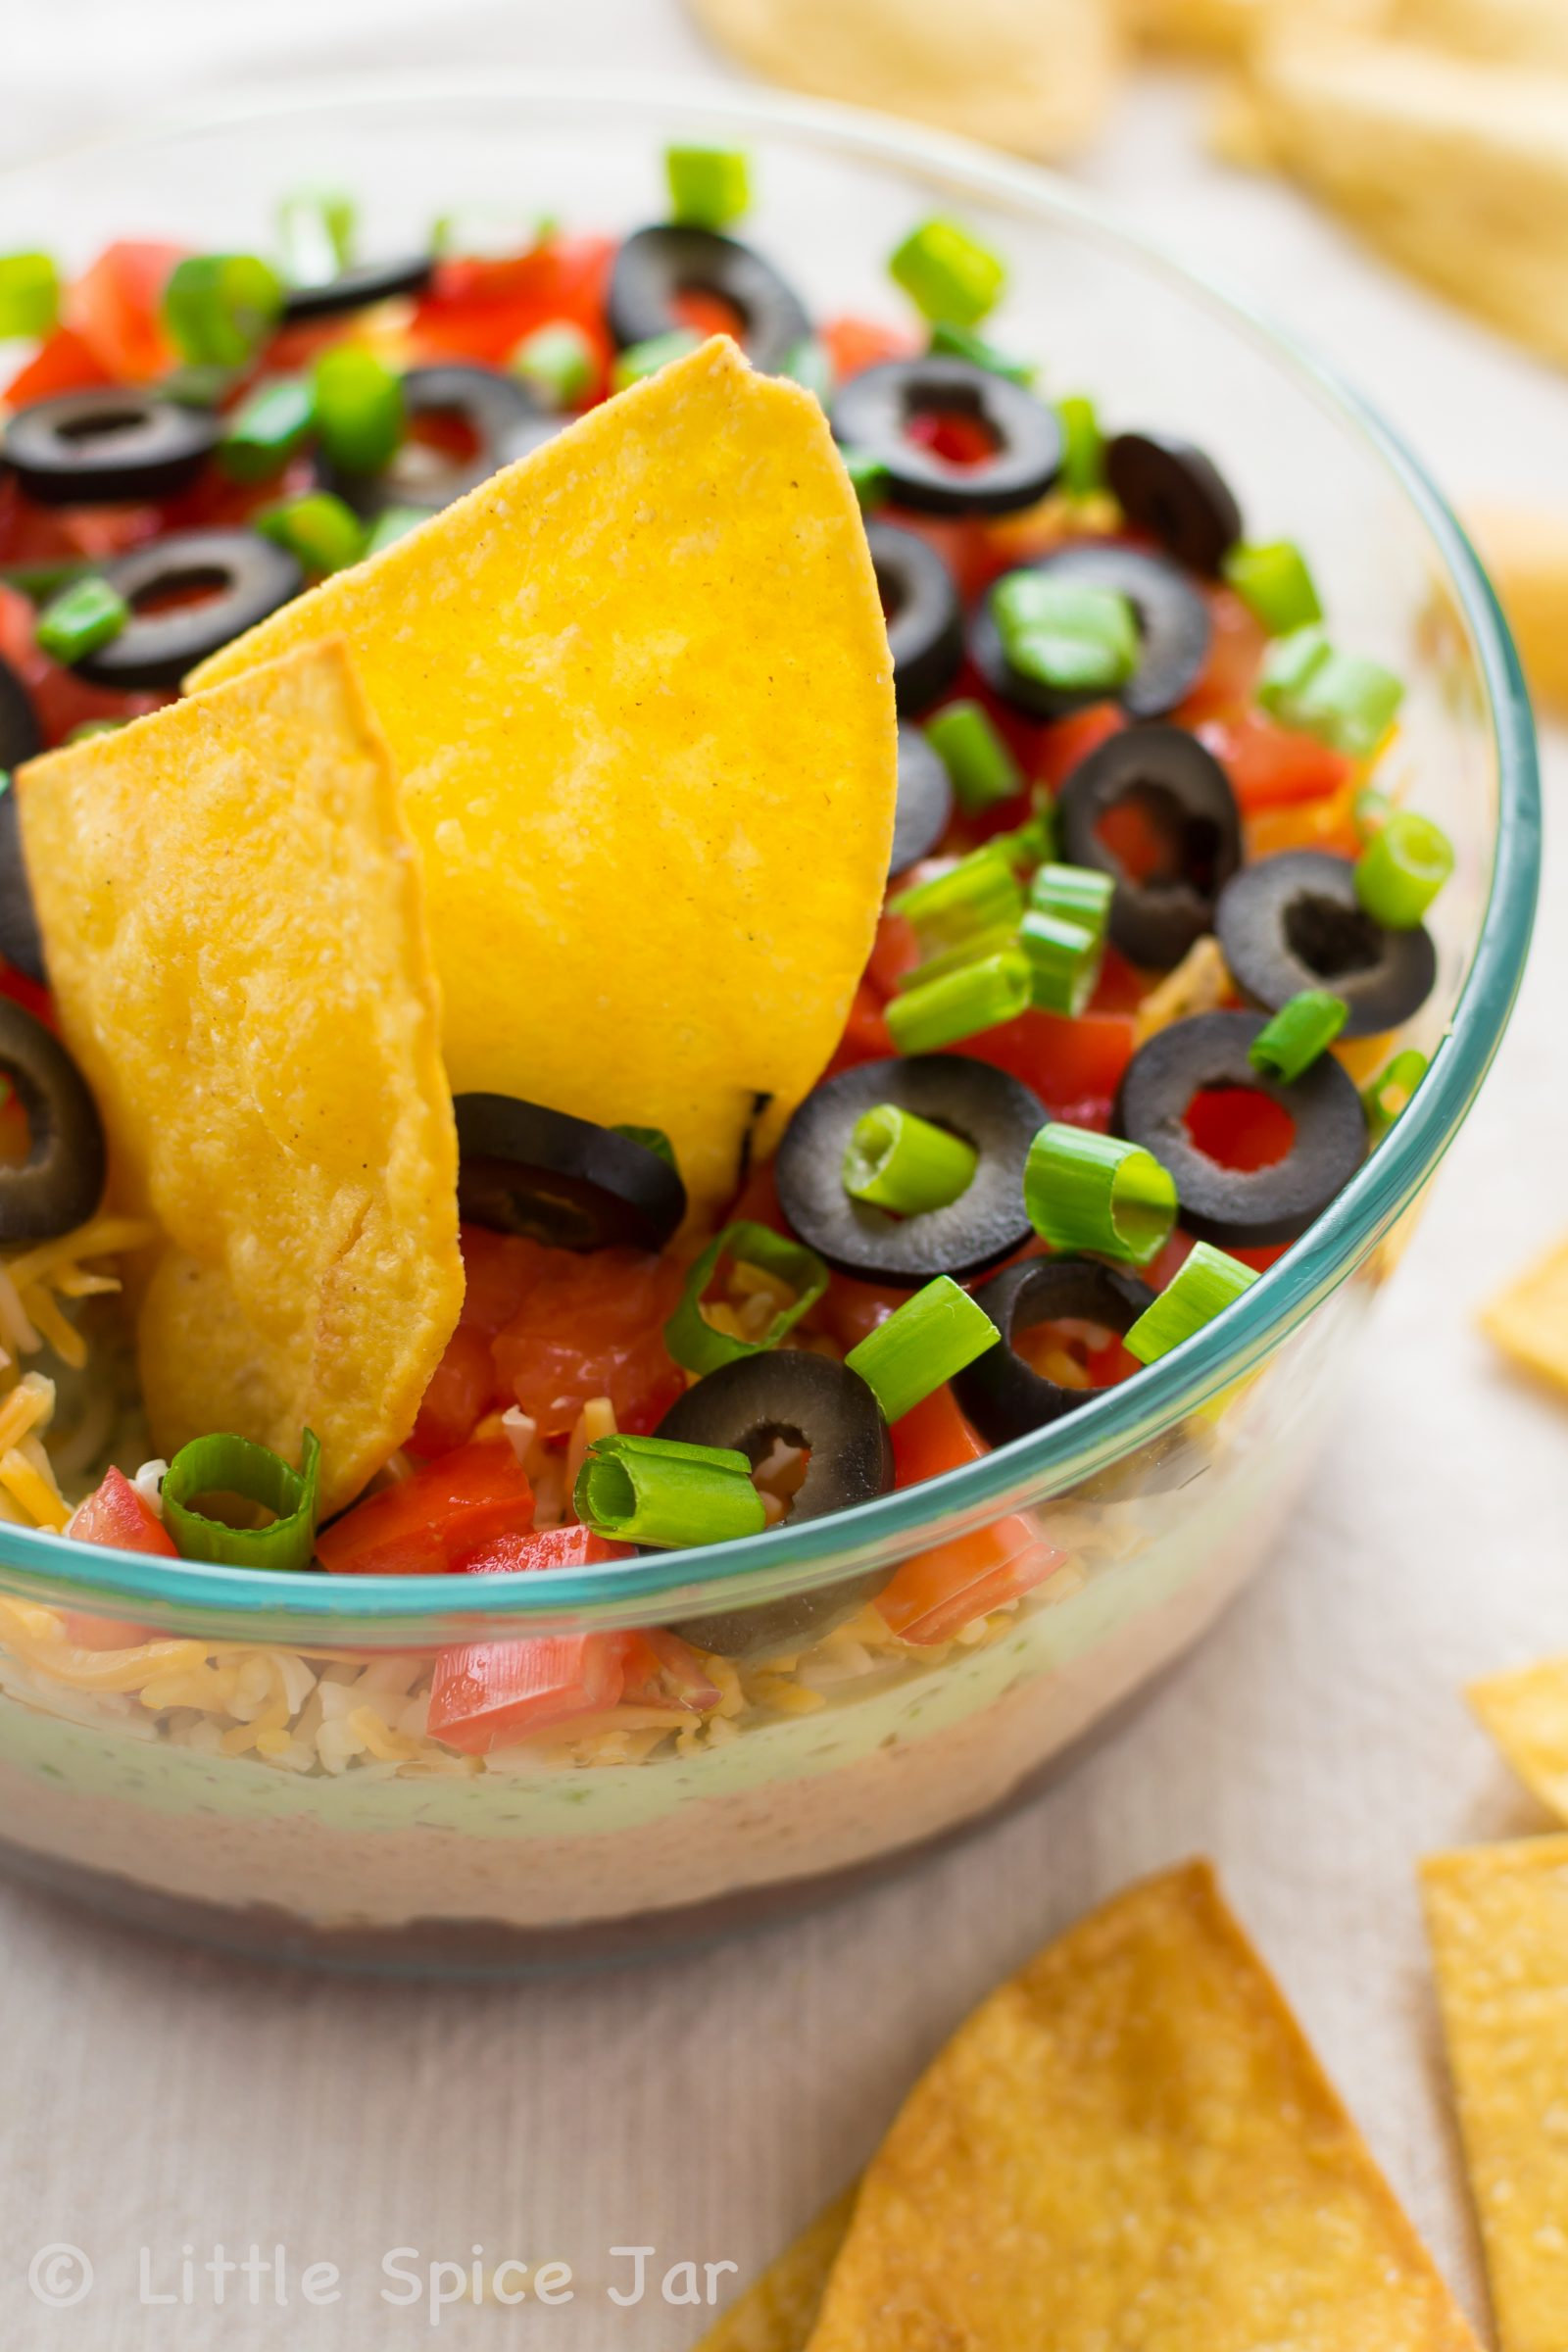 SKINNY SEVEN LAYER DIP WITH HOMEMADE TORTILLA CHIPS - Little Spice Jar